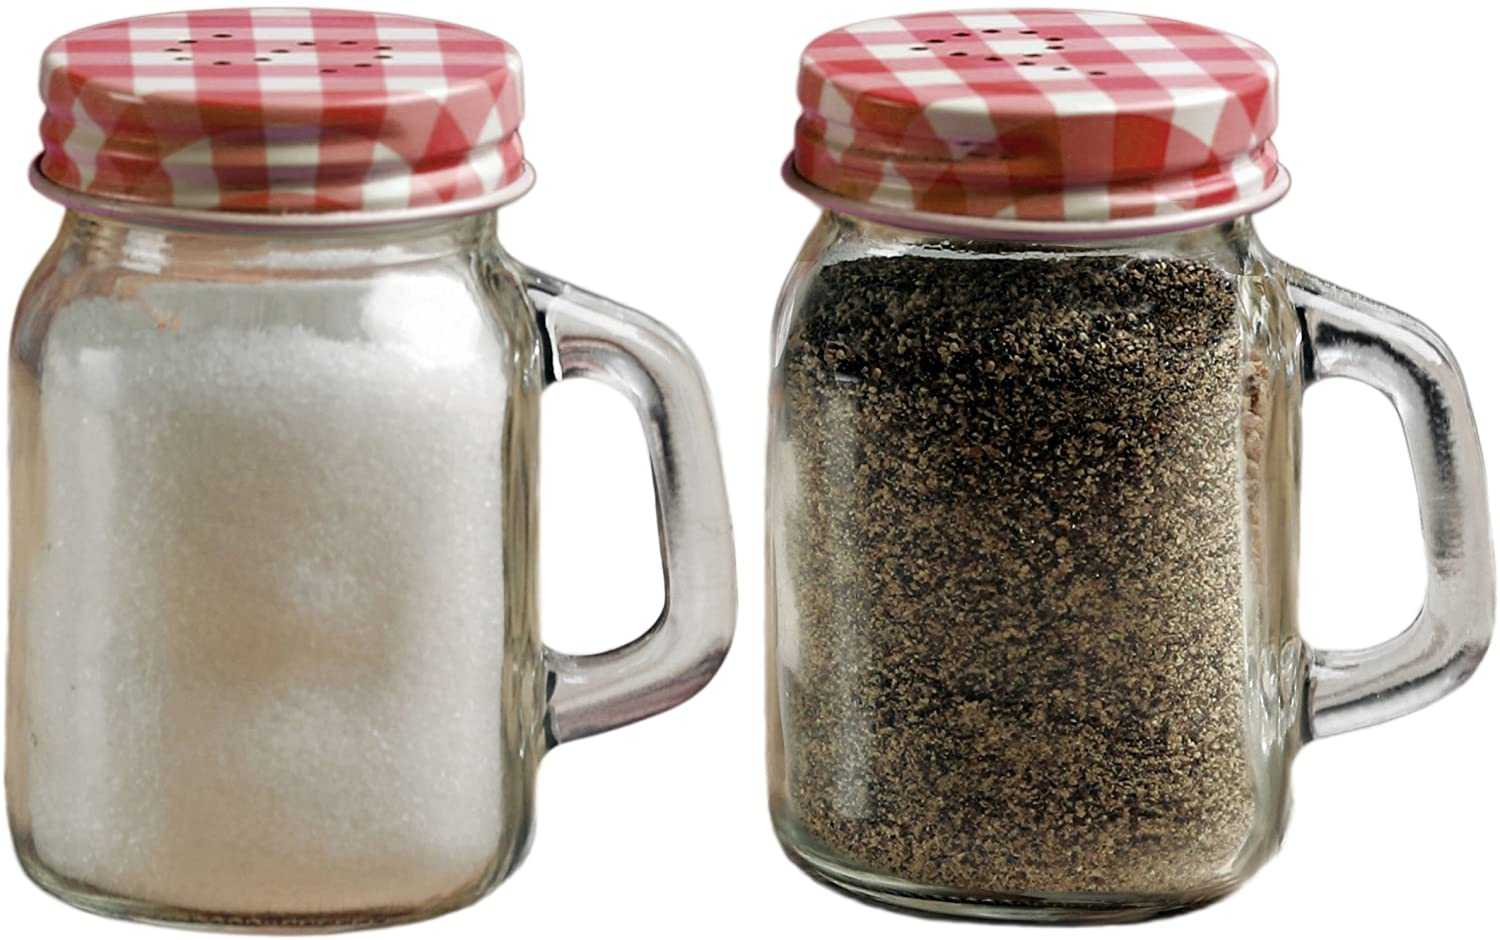 Circleware Mini Mason Jar Mug Glass Salt and Pepper Shakers with Metal Lids, Serving Food Container Glassware Dispensers Perfect for Himalayan Seasoning Herbs Spices, 5 oz, Red